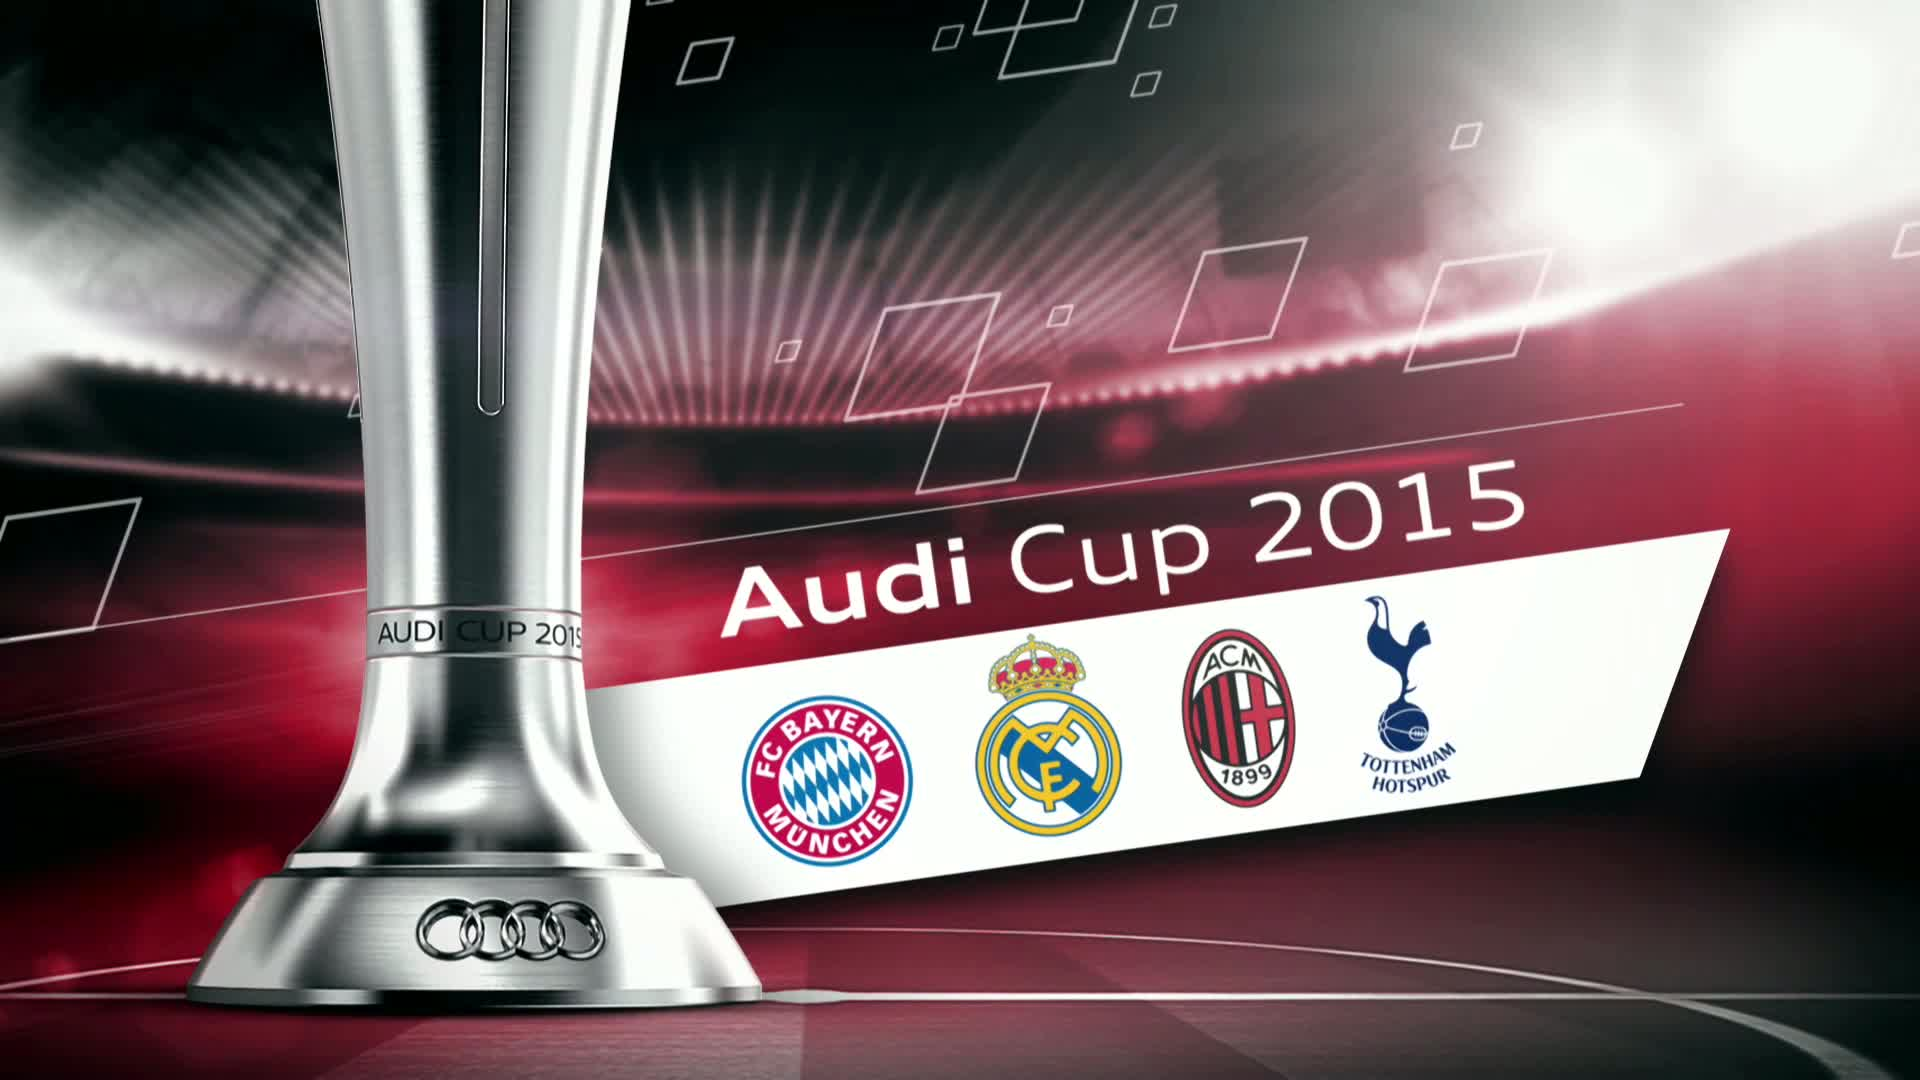 Audi Cup - best scenes of Semi Finals on August 4th